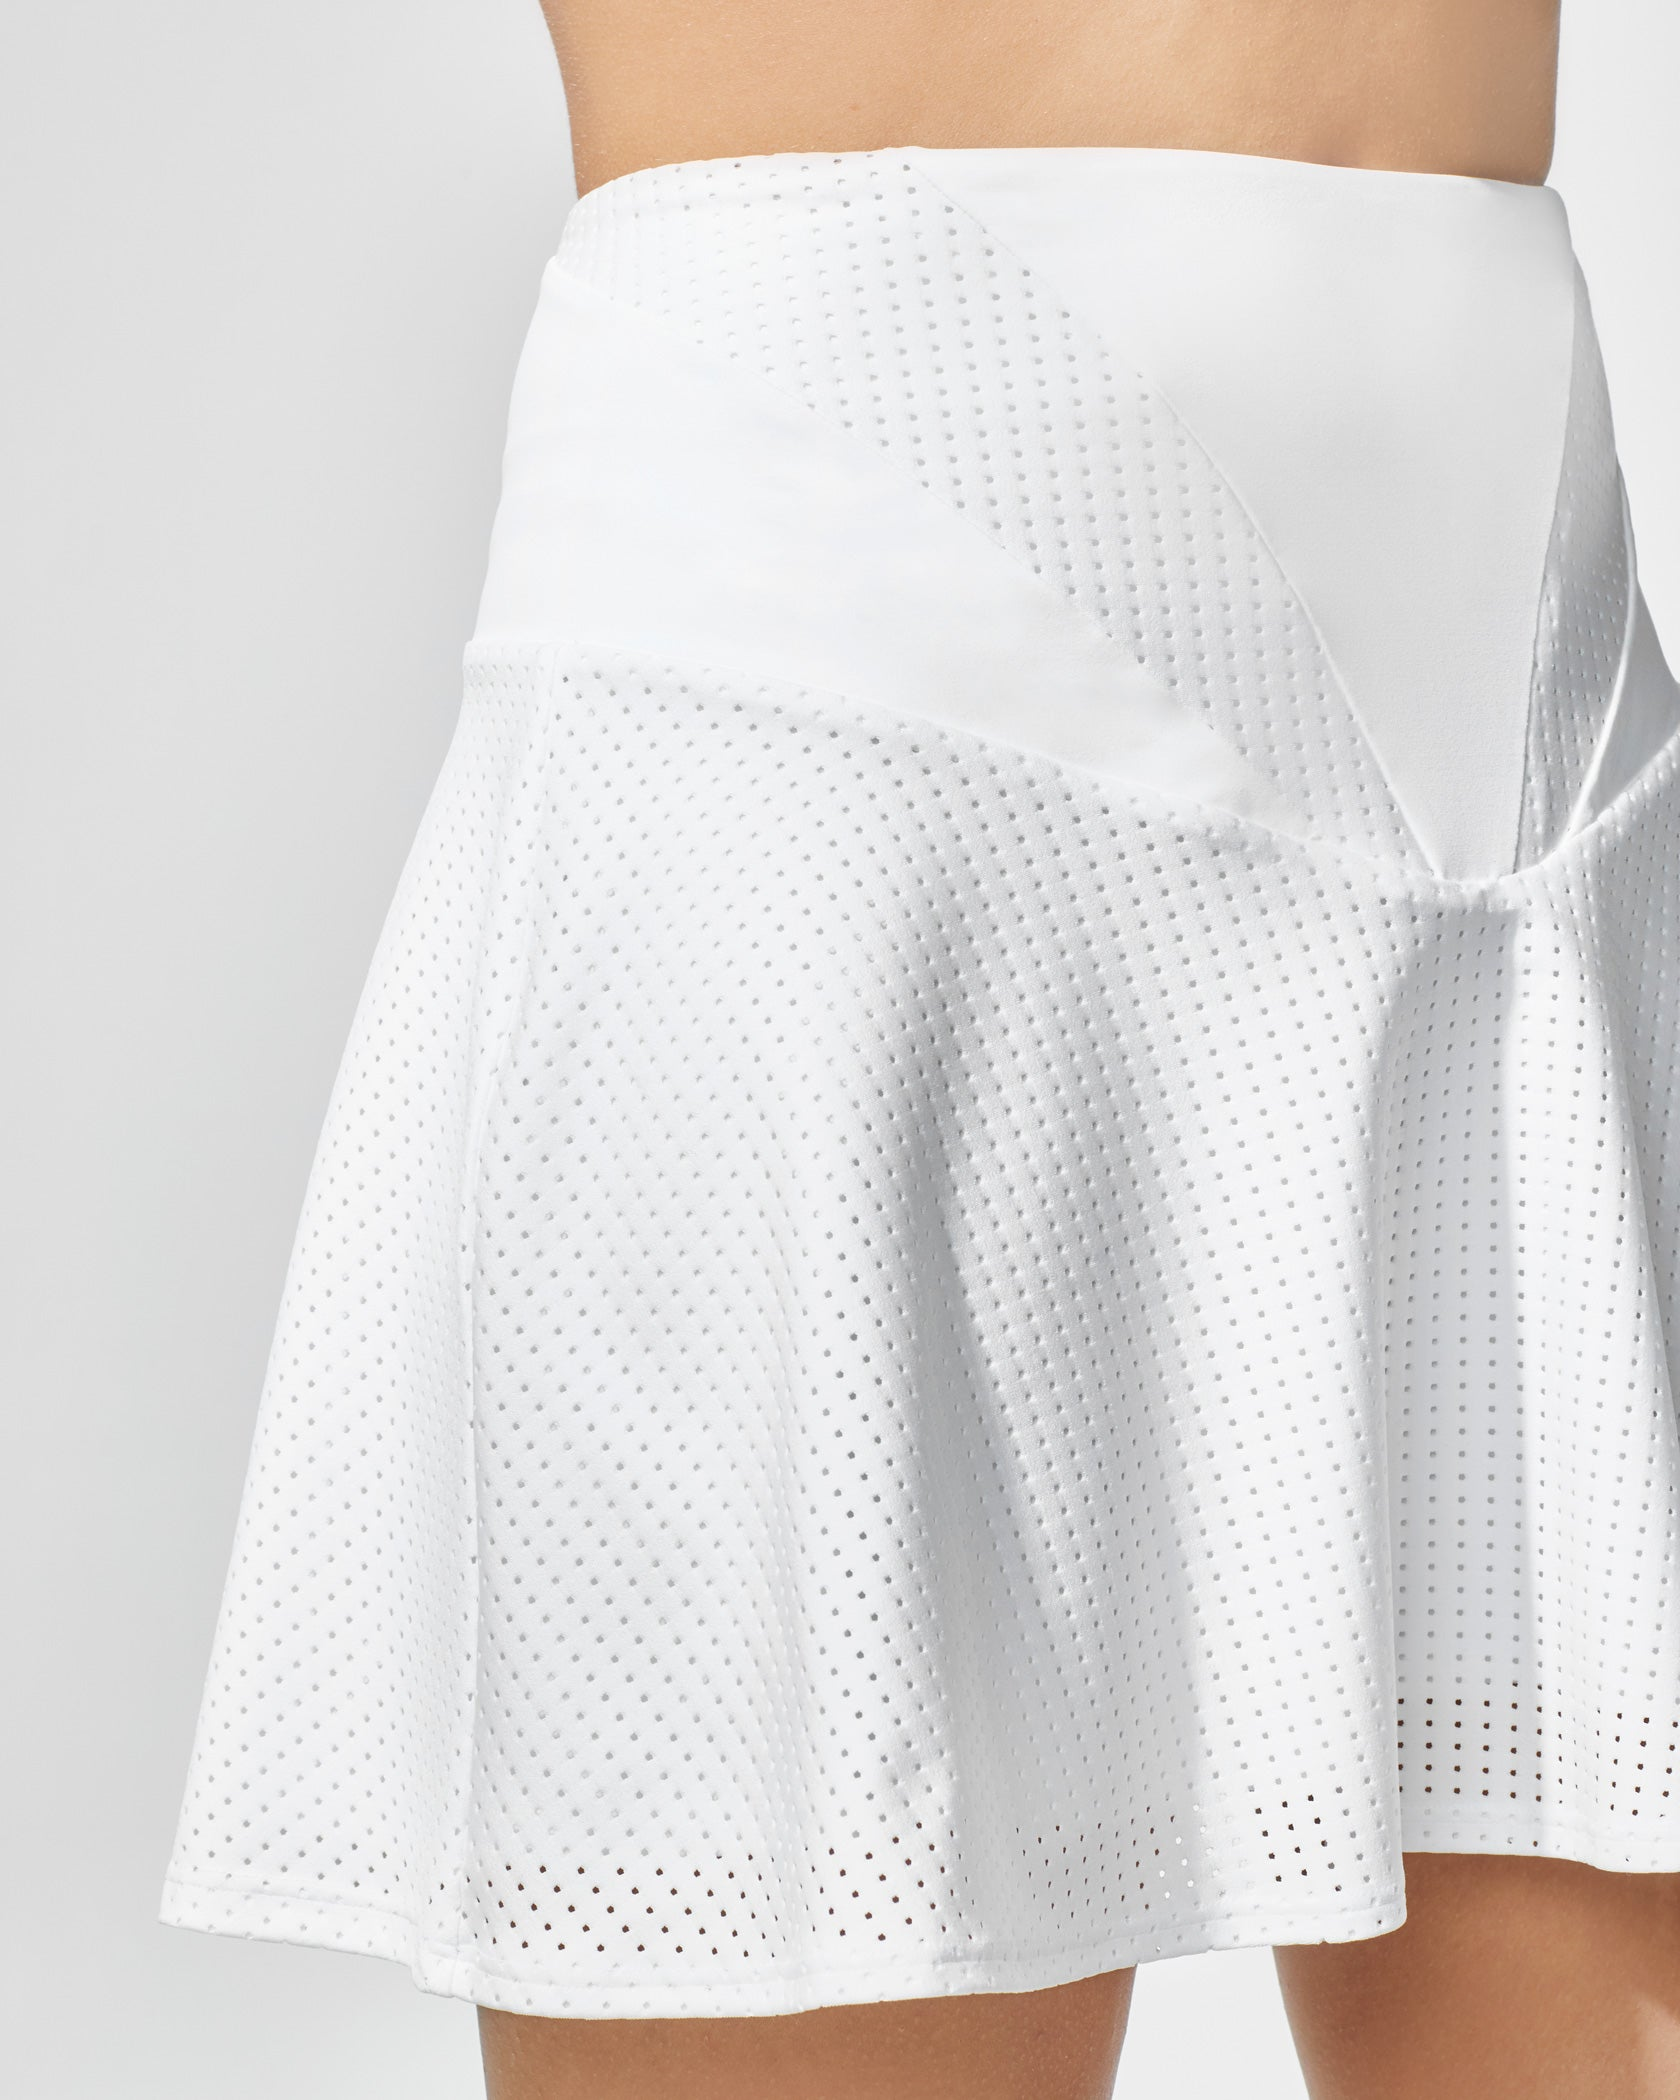 Ace Skirt - White